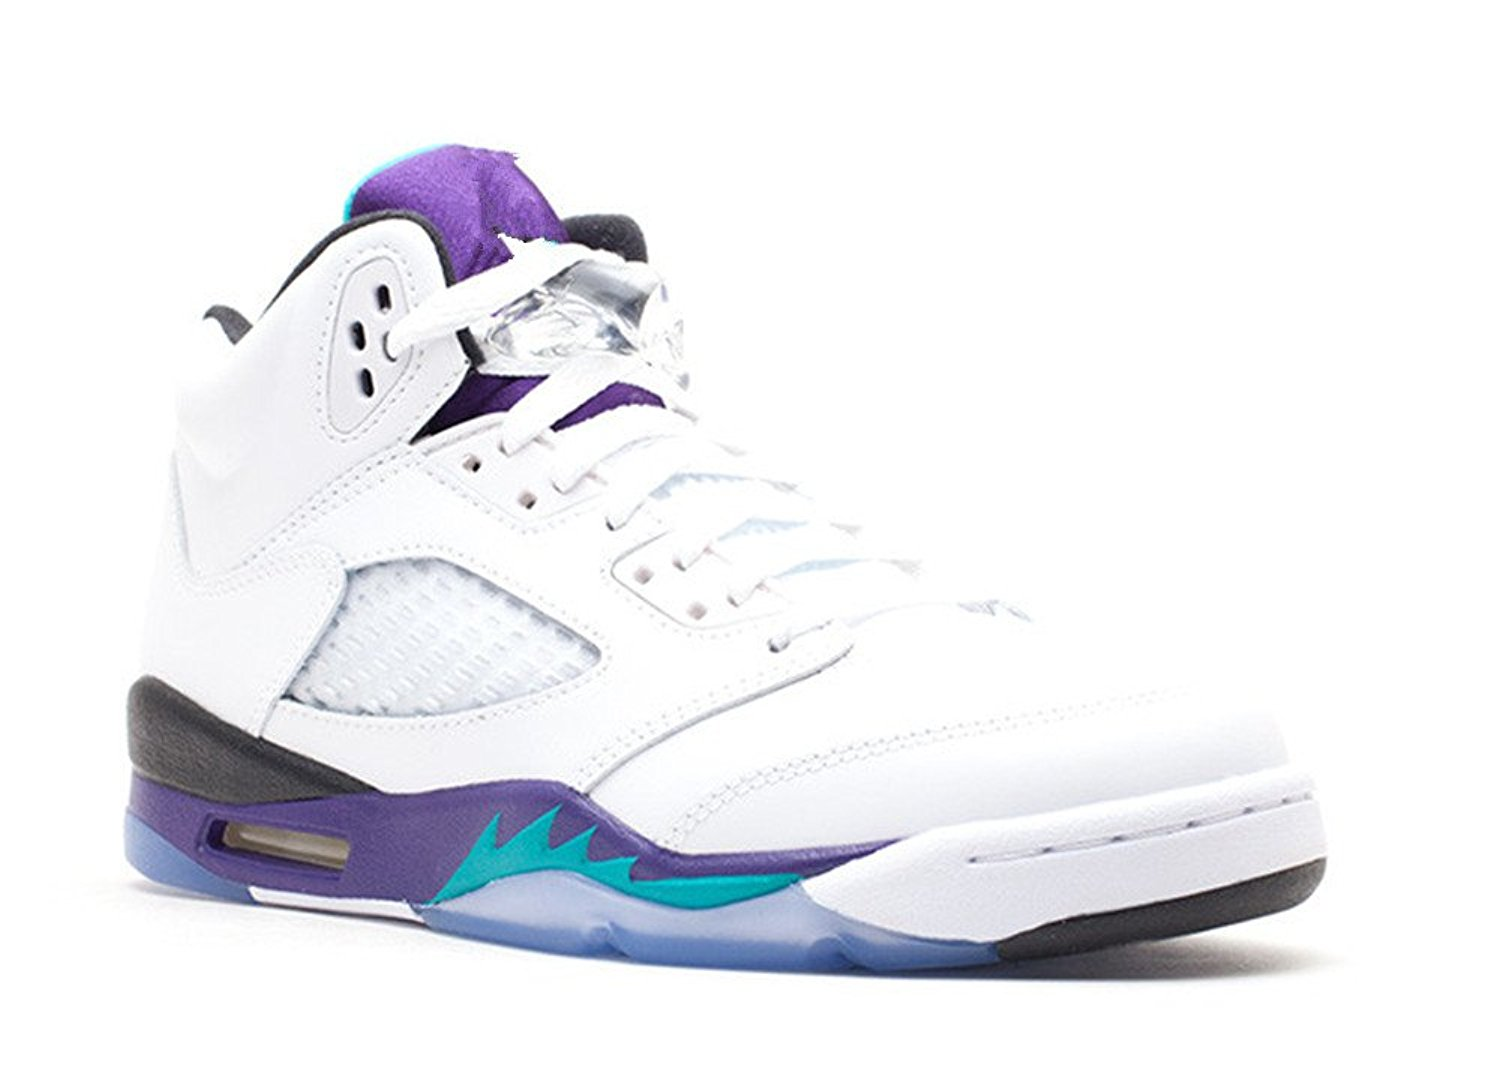 e9871c40eb16 Get Quotations · Mrs Annabel Day Men s Basketball Shoe Air Jordan 5 Retro  gs grape 2013 release White new